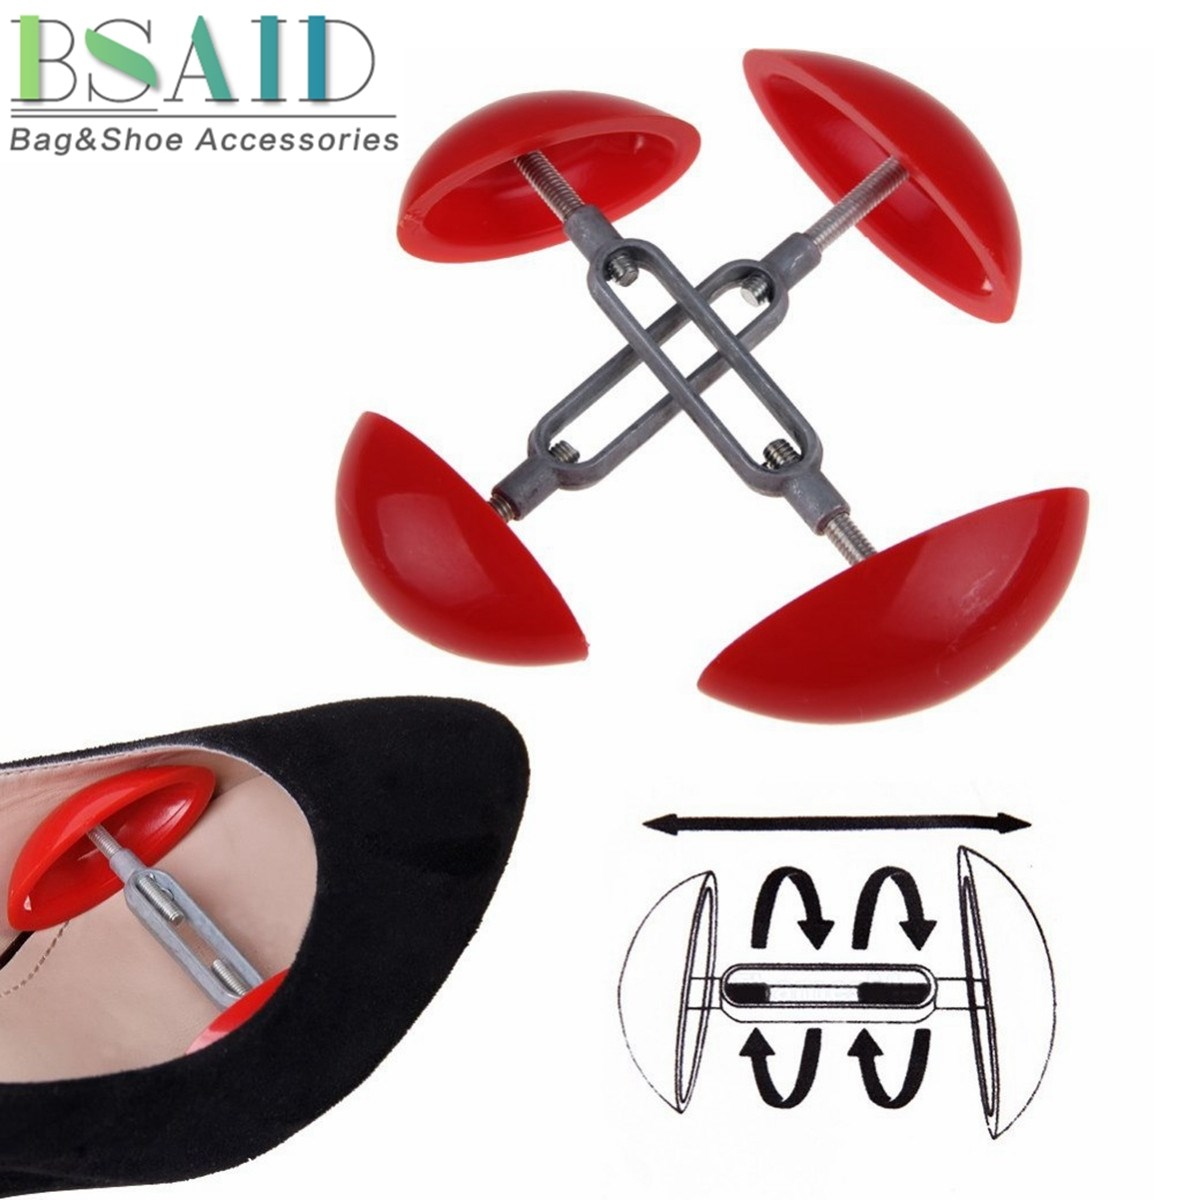 BSAID 1 Pair Shoe Stretcher Shoes Tree Shaper Rack, Mini Mens Ladies Professional Shoe Trees Adjustable Shaper Width Expander lhbl 1 pair 12 1 2 inch boot stretcher shaper shoe tree with handle